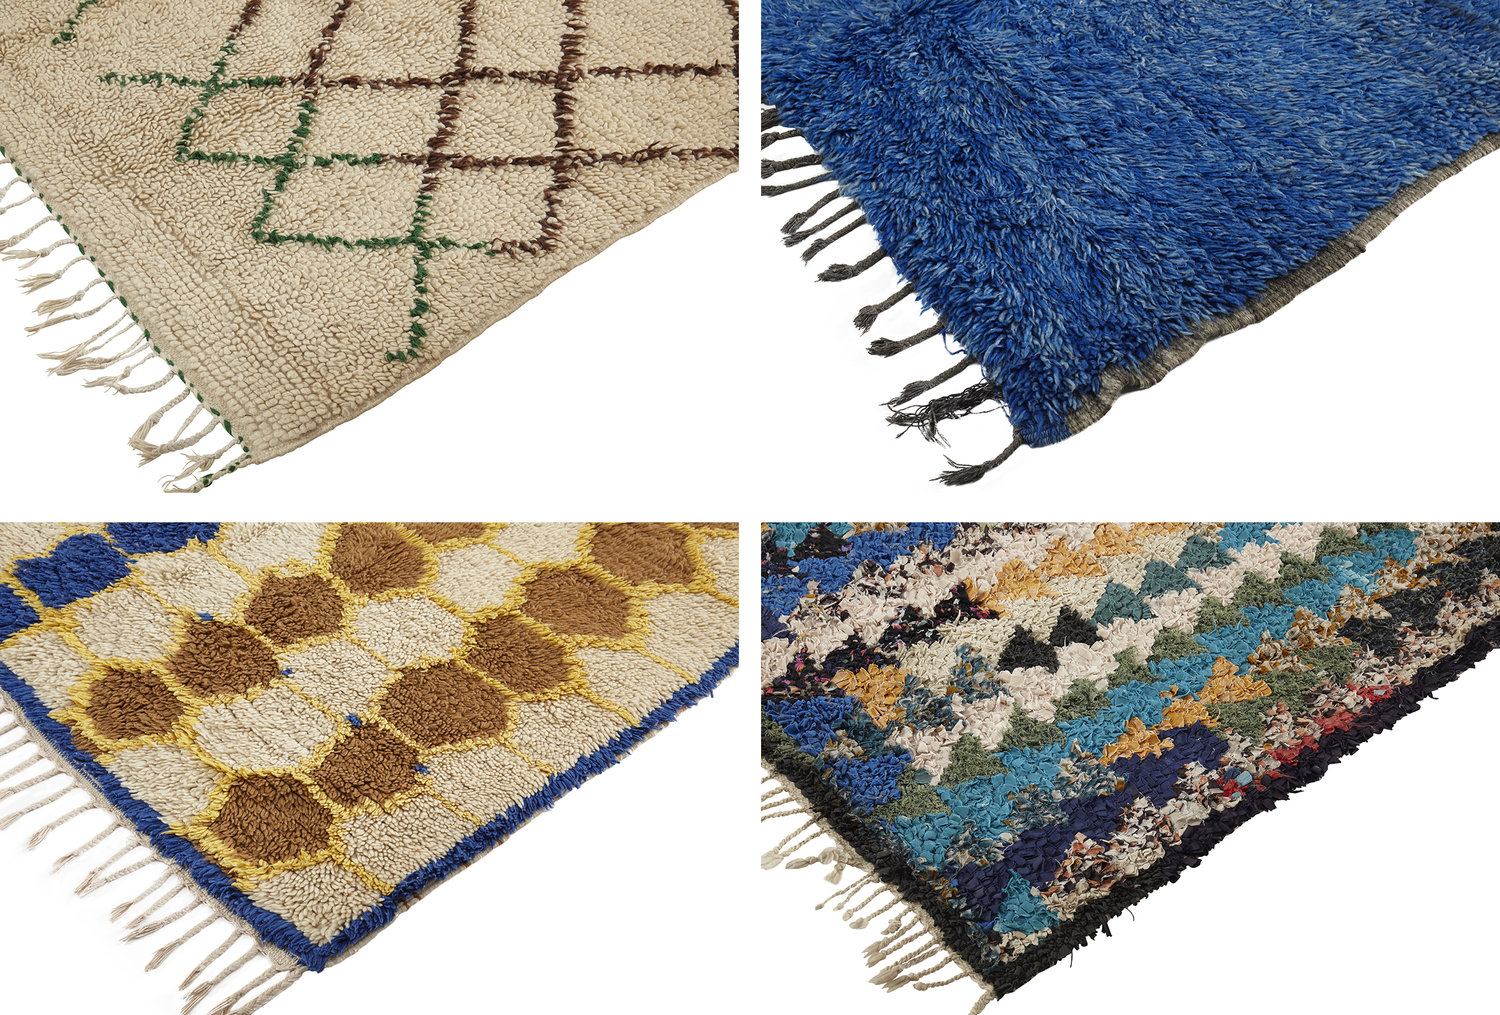 From left to right: 1) Looped Pile Beni Ouarain, Beni M'Guild Rug, Azilal Rug, Boucherouite Rug